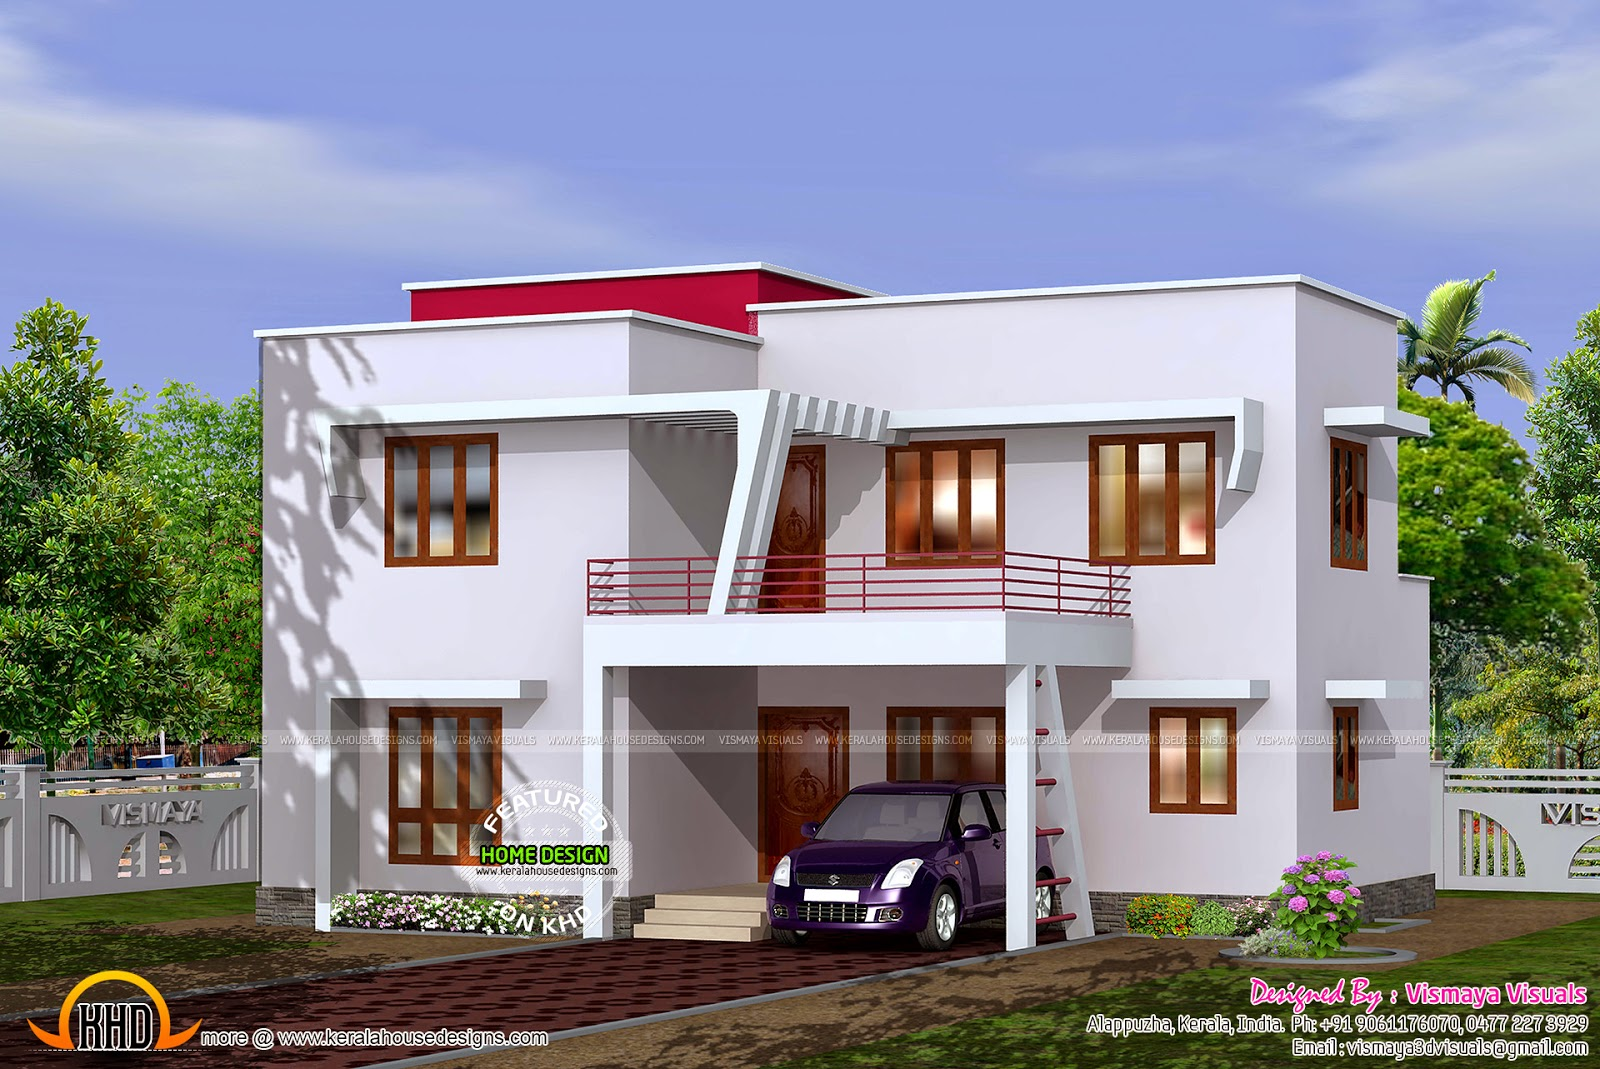 4 bedroom flat roof villa kerala home design and floor plans for Flat roof home plans